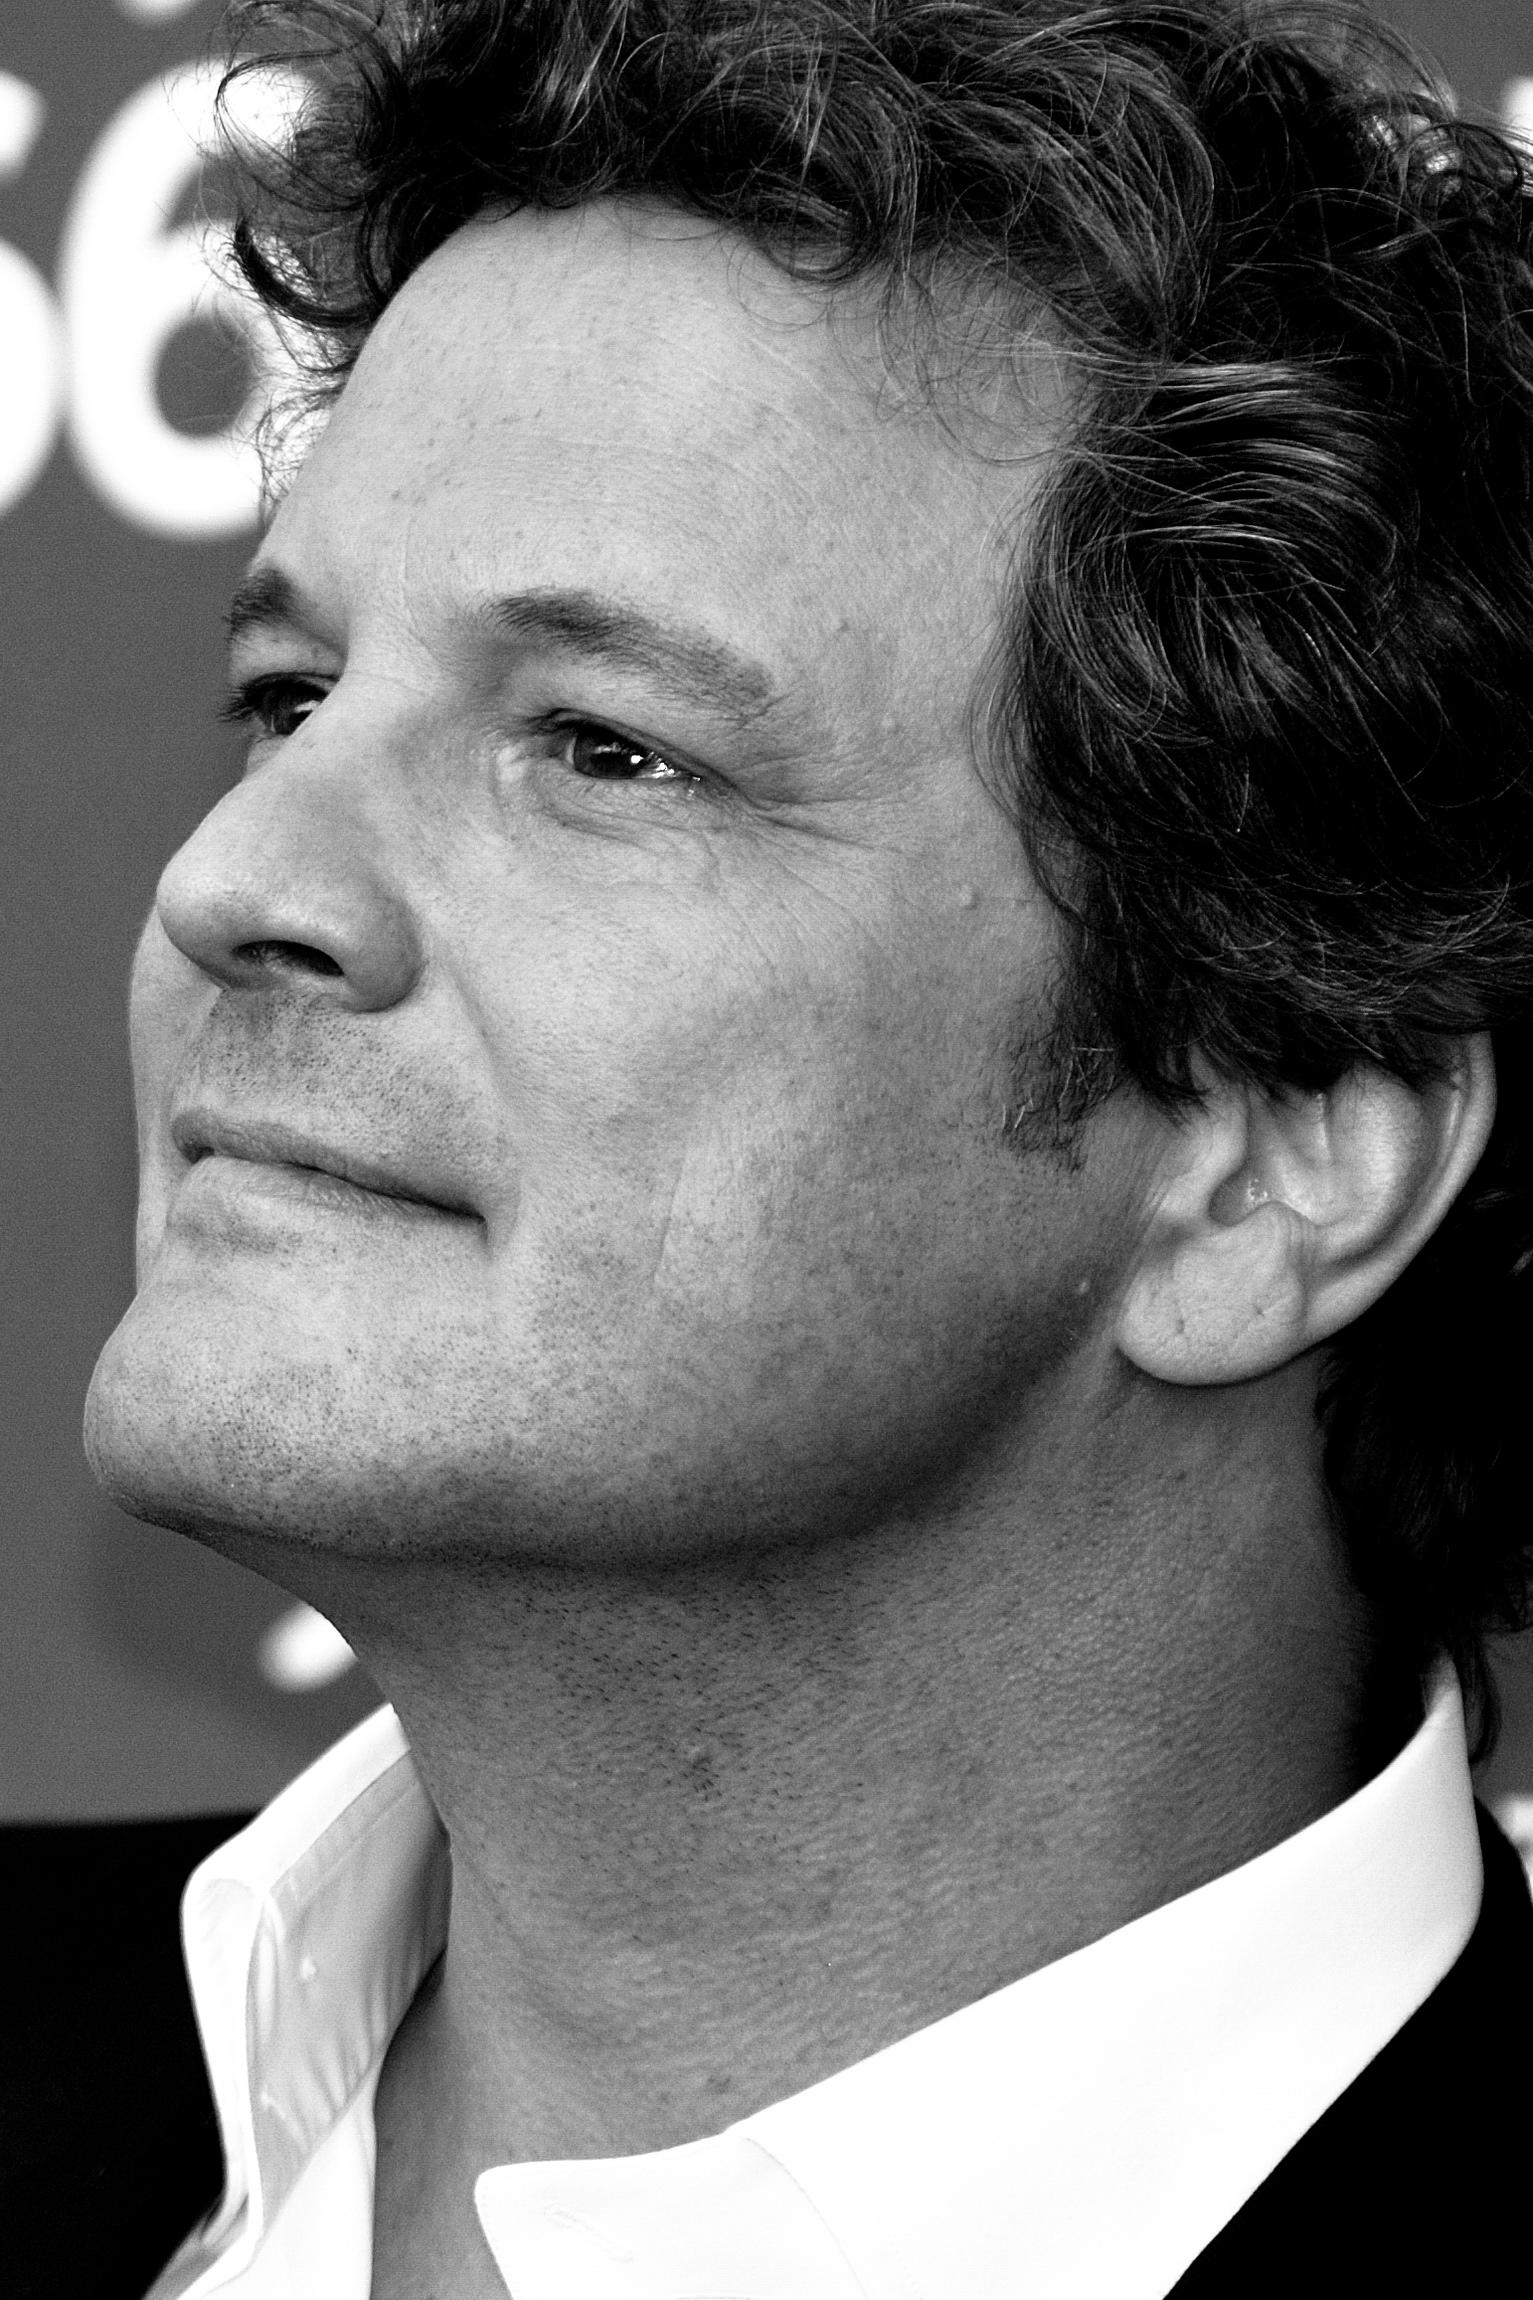 HQ Colin Firth Wallpapers | File 461.49Kb